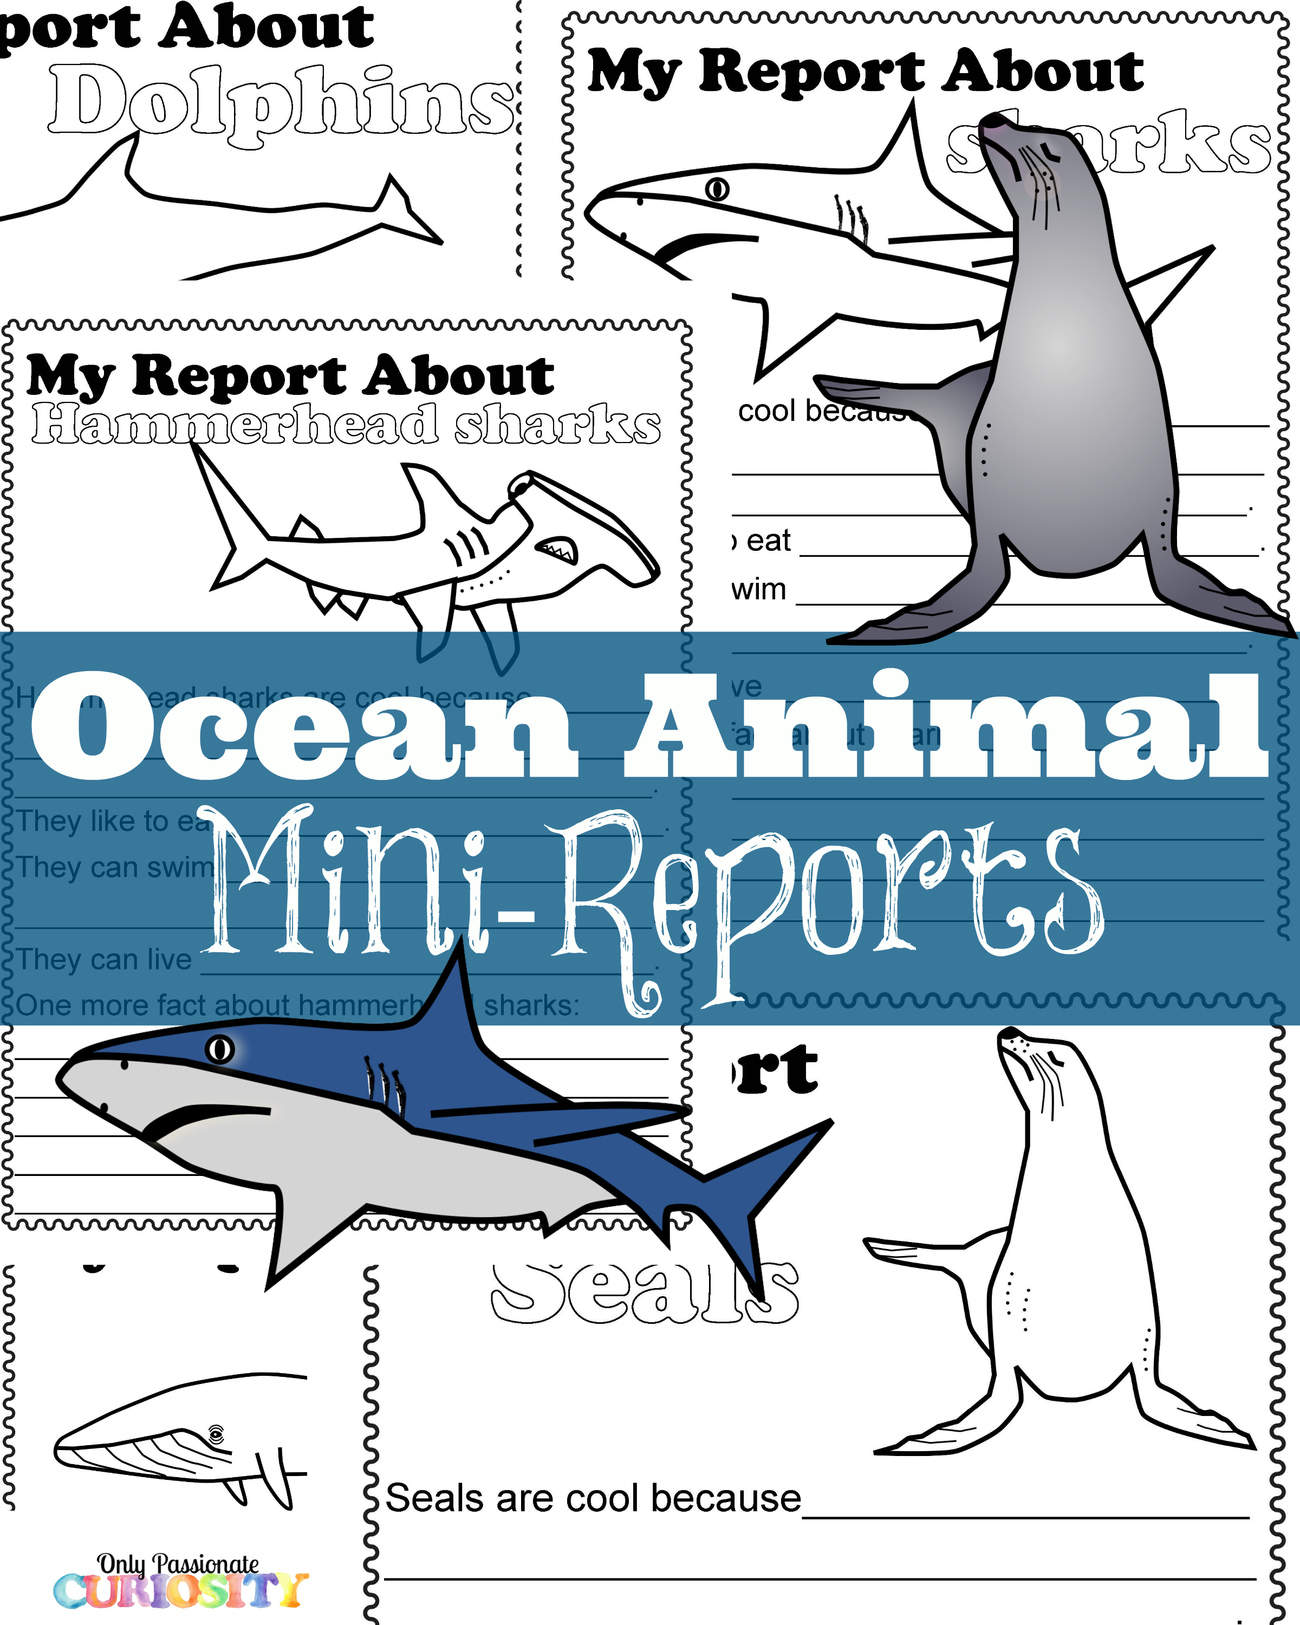 Ocean Animal Mini Reports Only Passionate Curiosity